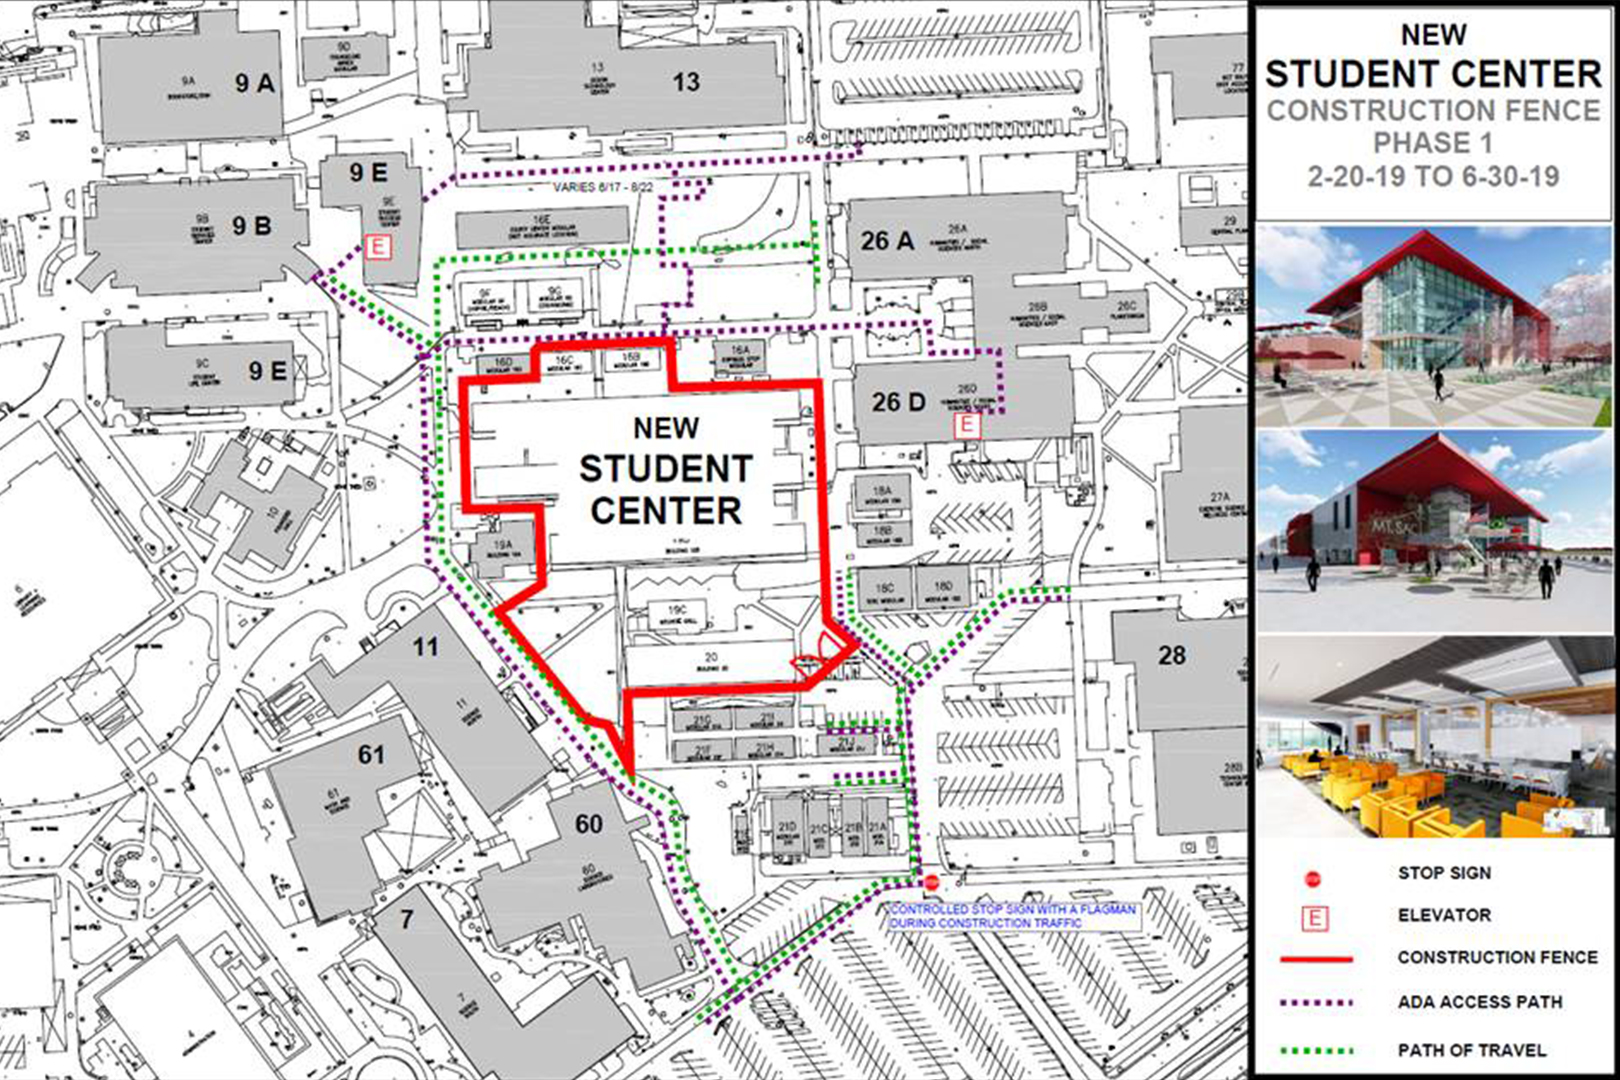 Foot Traffic During Student Center Construction